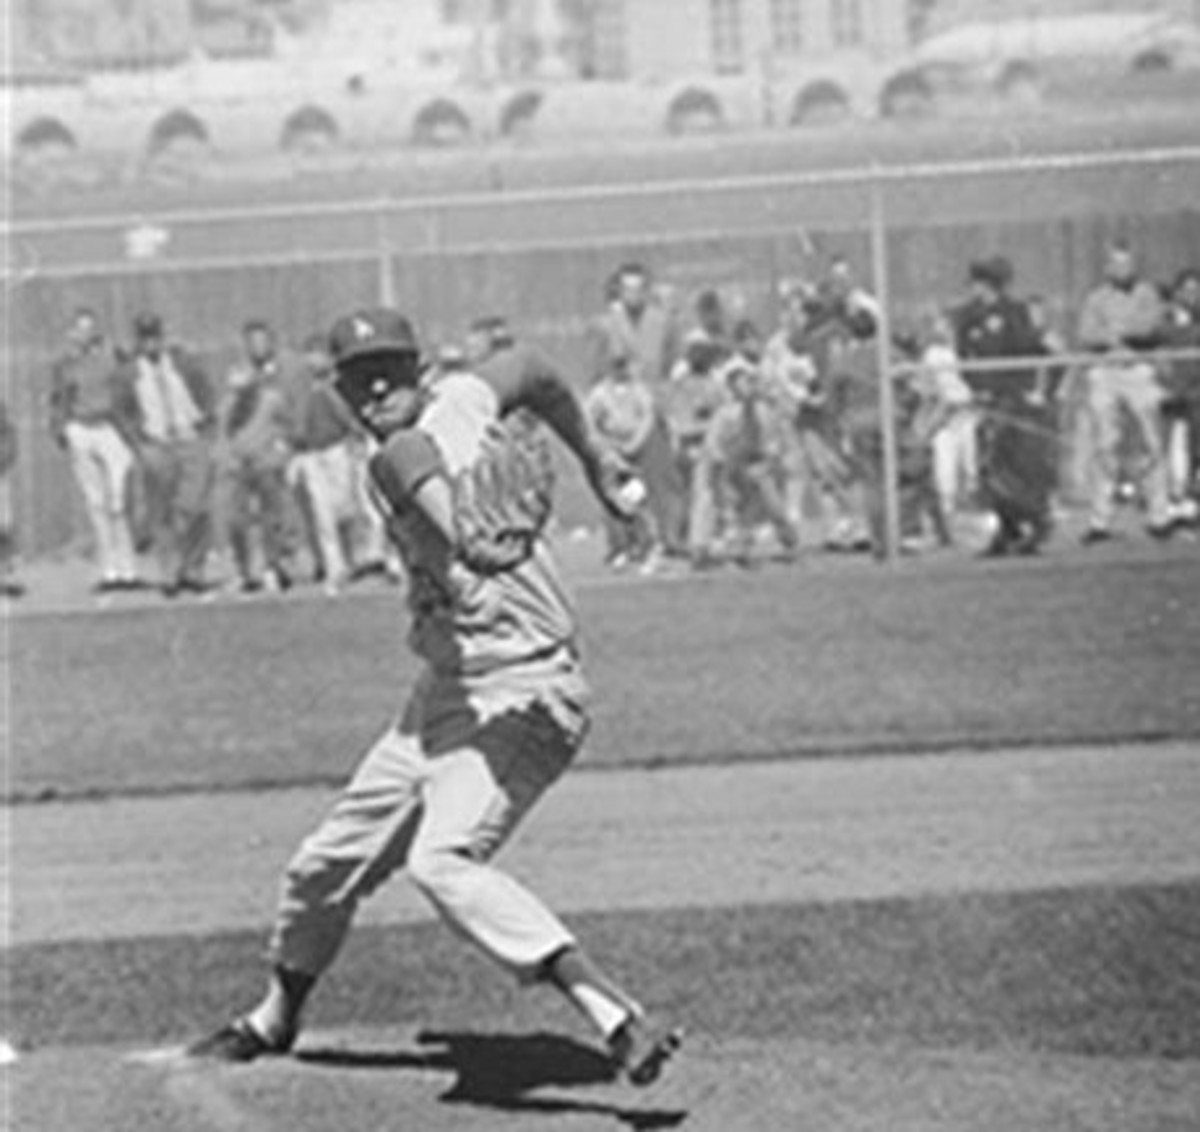 Don Drysdale at Candlestick earlier in the season.